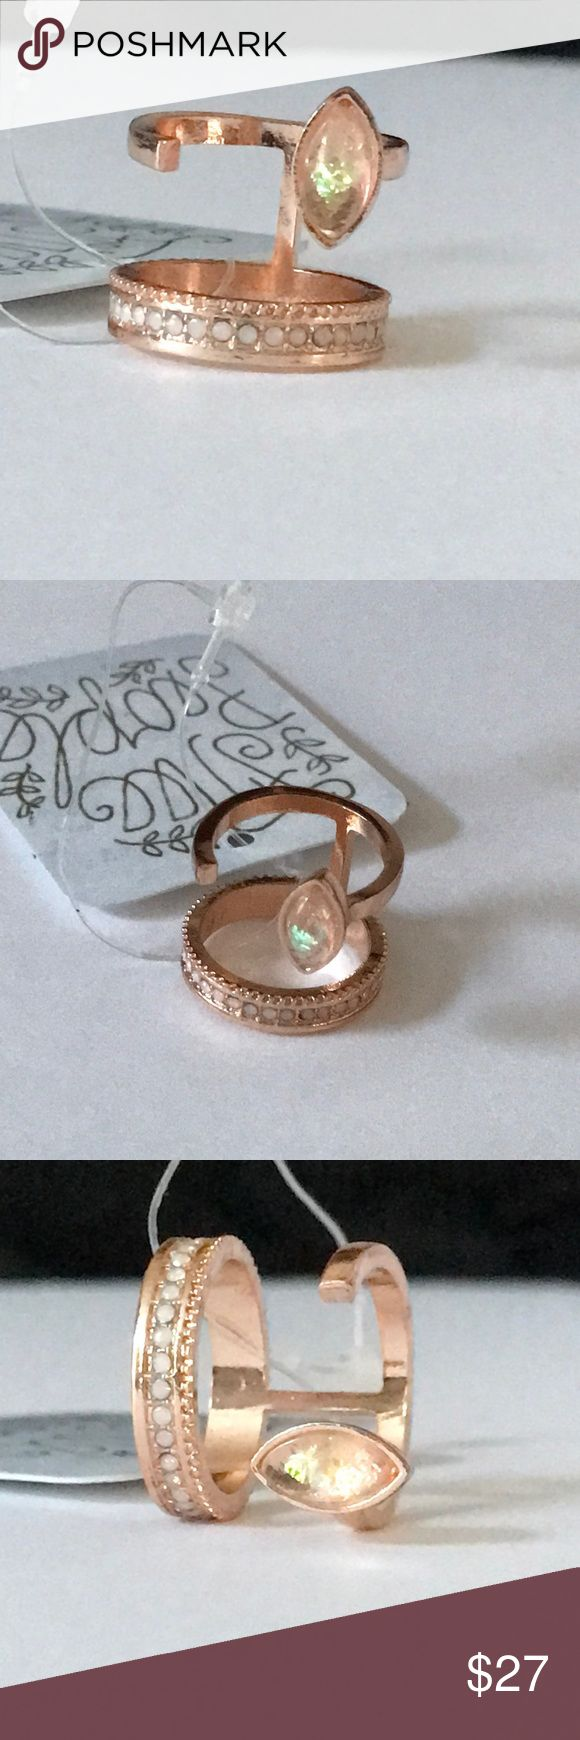 Free People rose gold fire opal open ring 6 Free People rose gold crystal open style ring. Sold out style. NWT size 6 Boho style, nice neutral tones, wear with everything. Free People Jewelry Rings